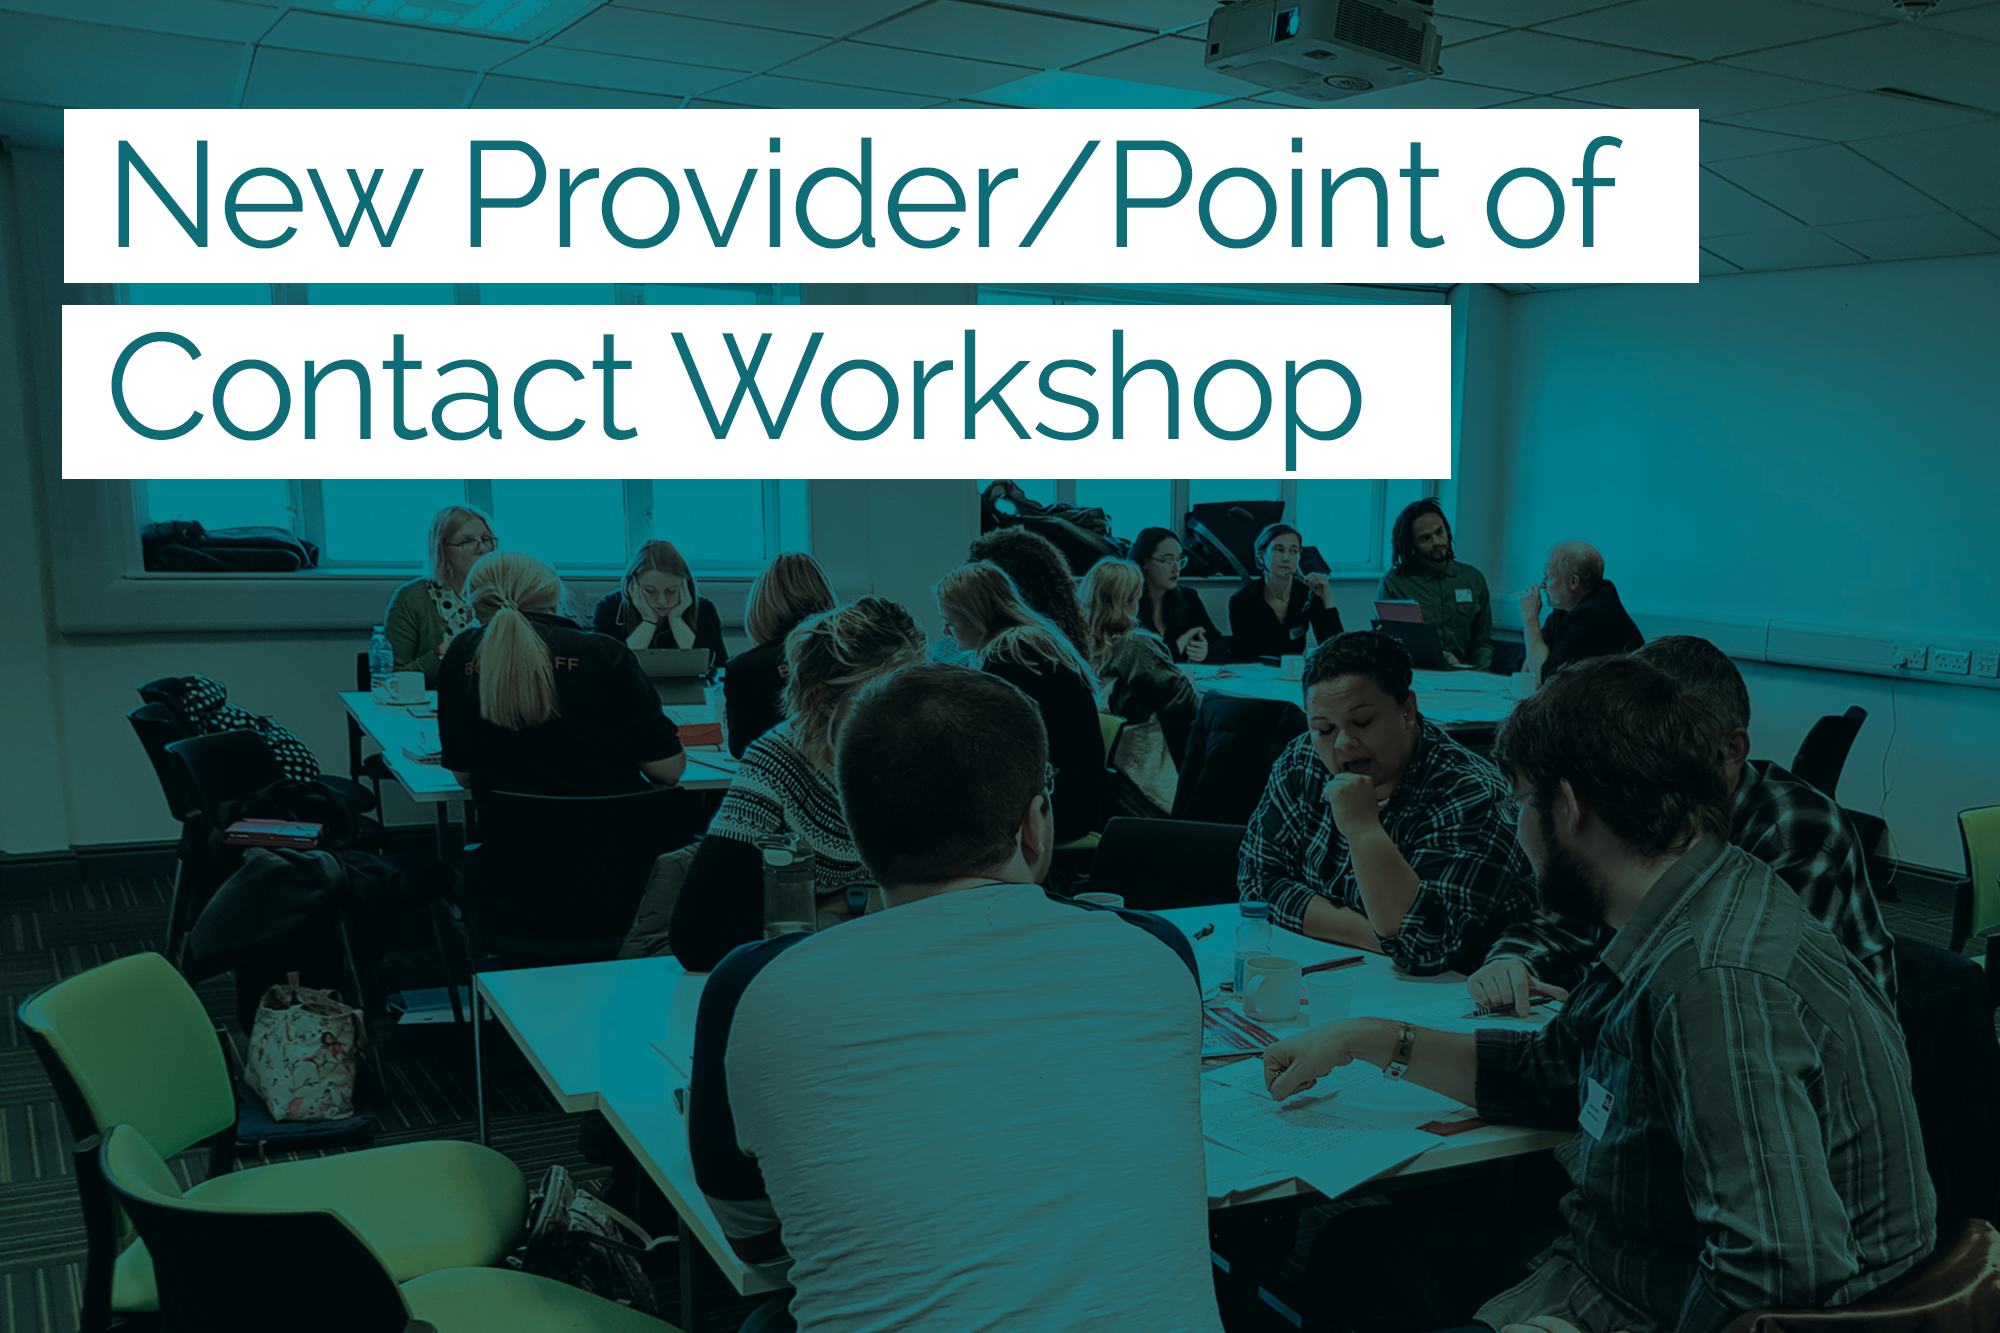 New Provider / Point of Contact Workshops